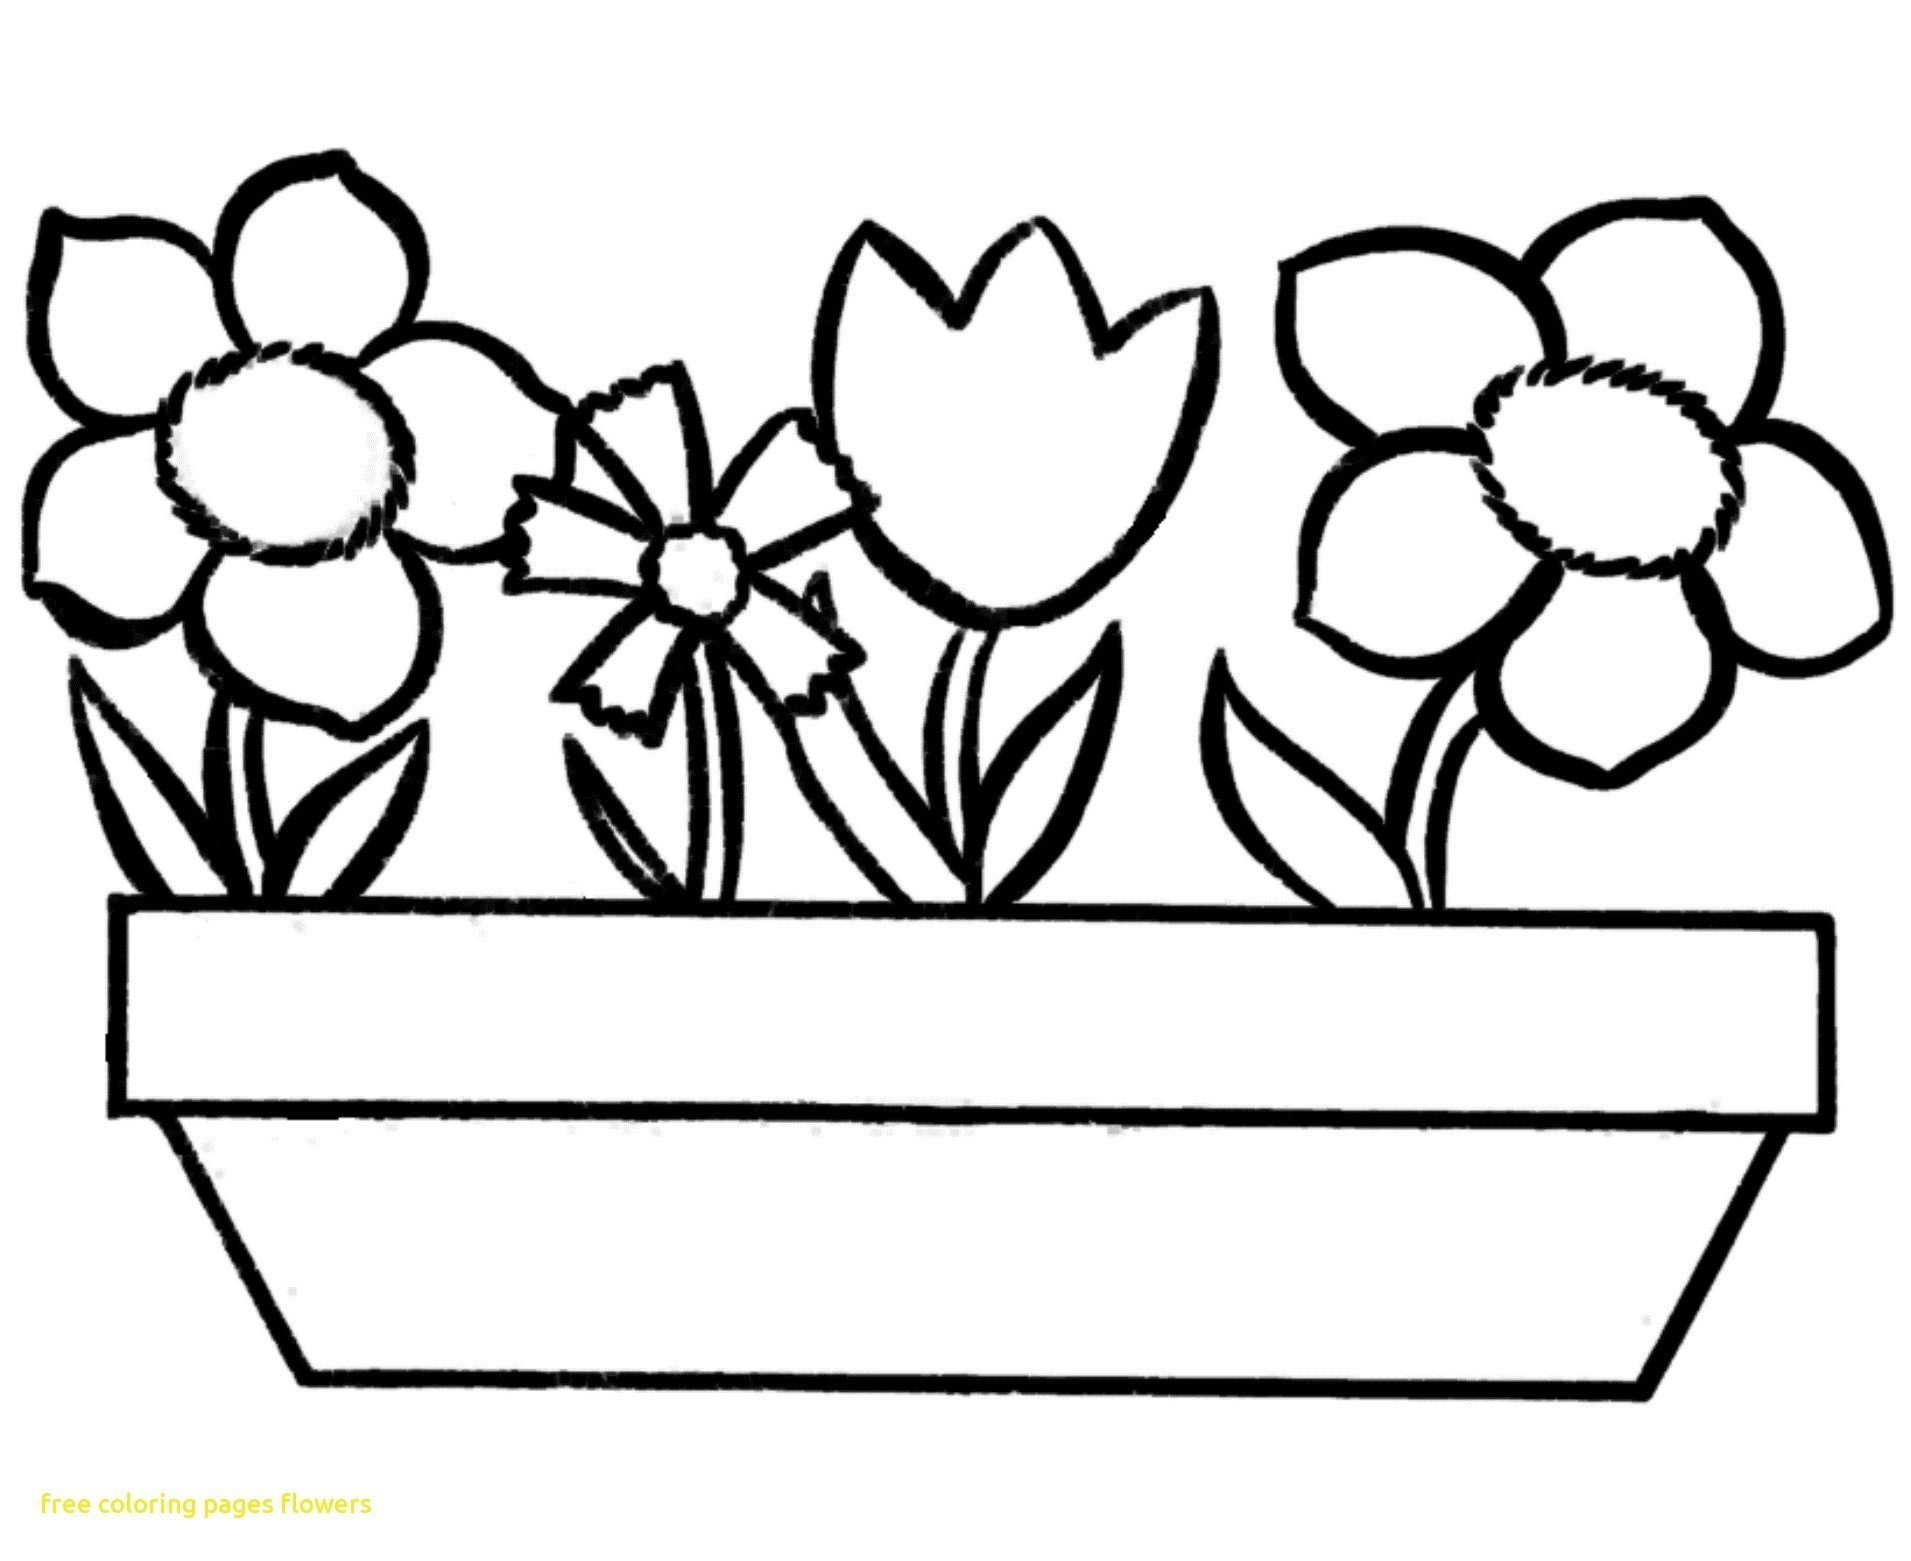 Flower Coloring Pages Printable Flower Coloring Pages Medquit Free - Free Printable Flower Coloring Pages